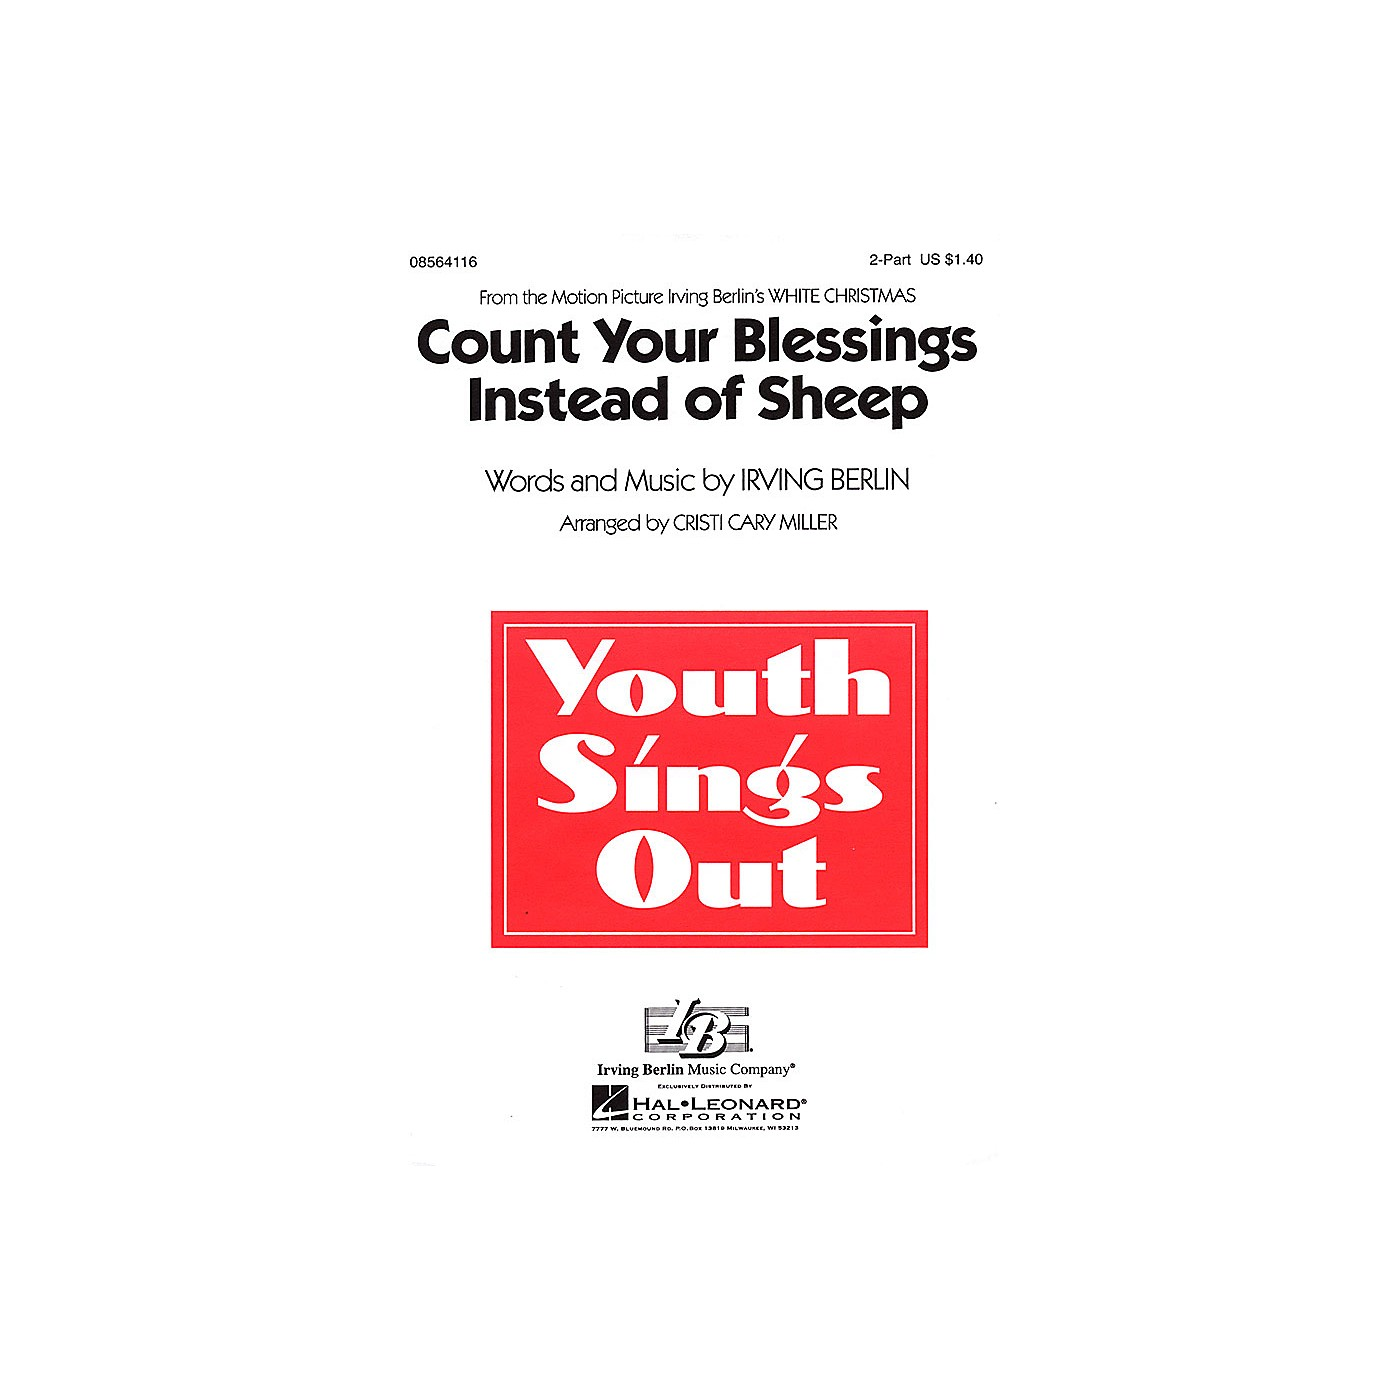 Hal Leonard Count Your Blessings Instead of Sheep (from White Christmas) 2-Part arranged by Cristi Cary Miller thumbnail